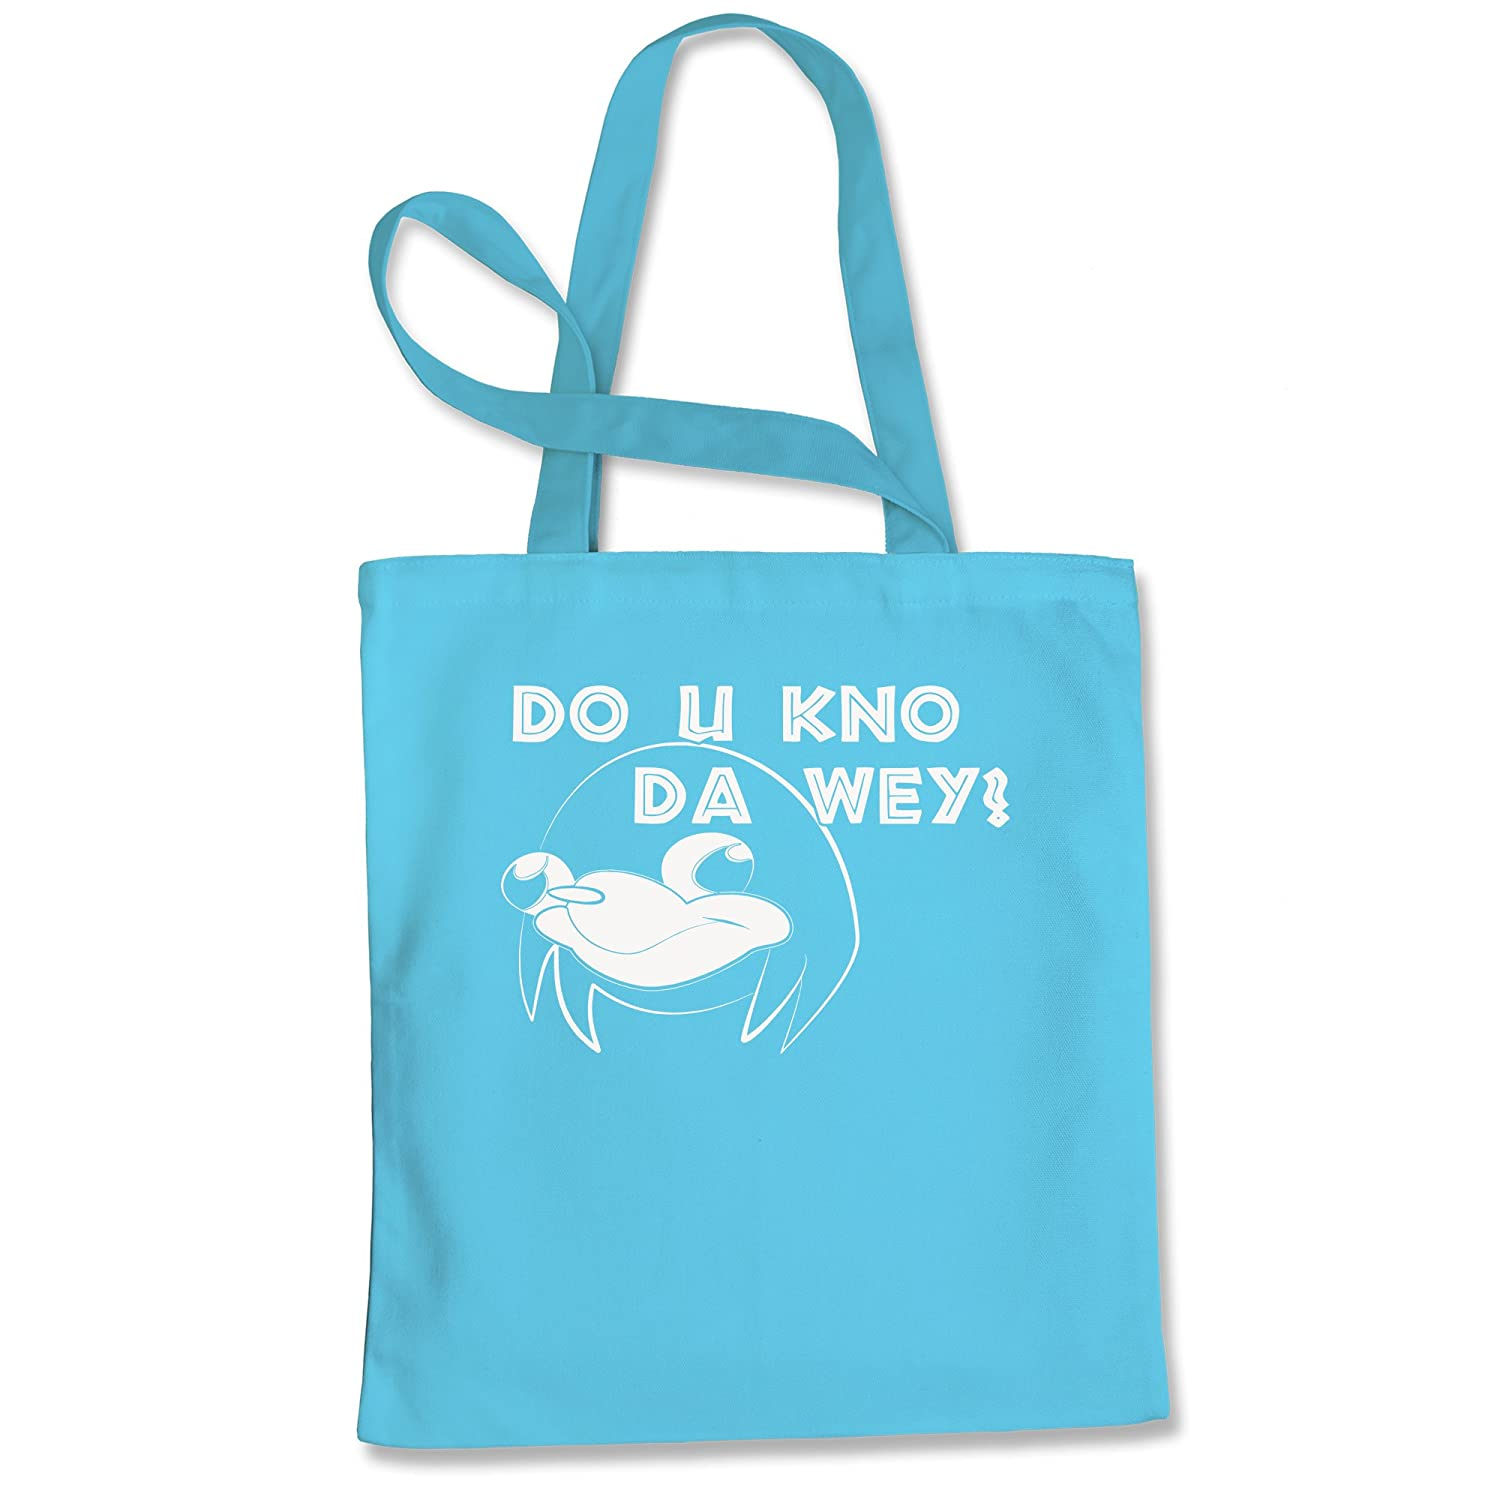 Tote Bag Ugandan Knuckles Do You Know Da Way Wey Pink Shopping Bag